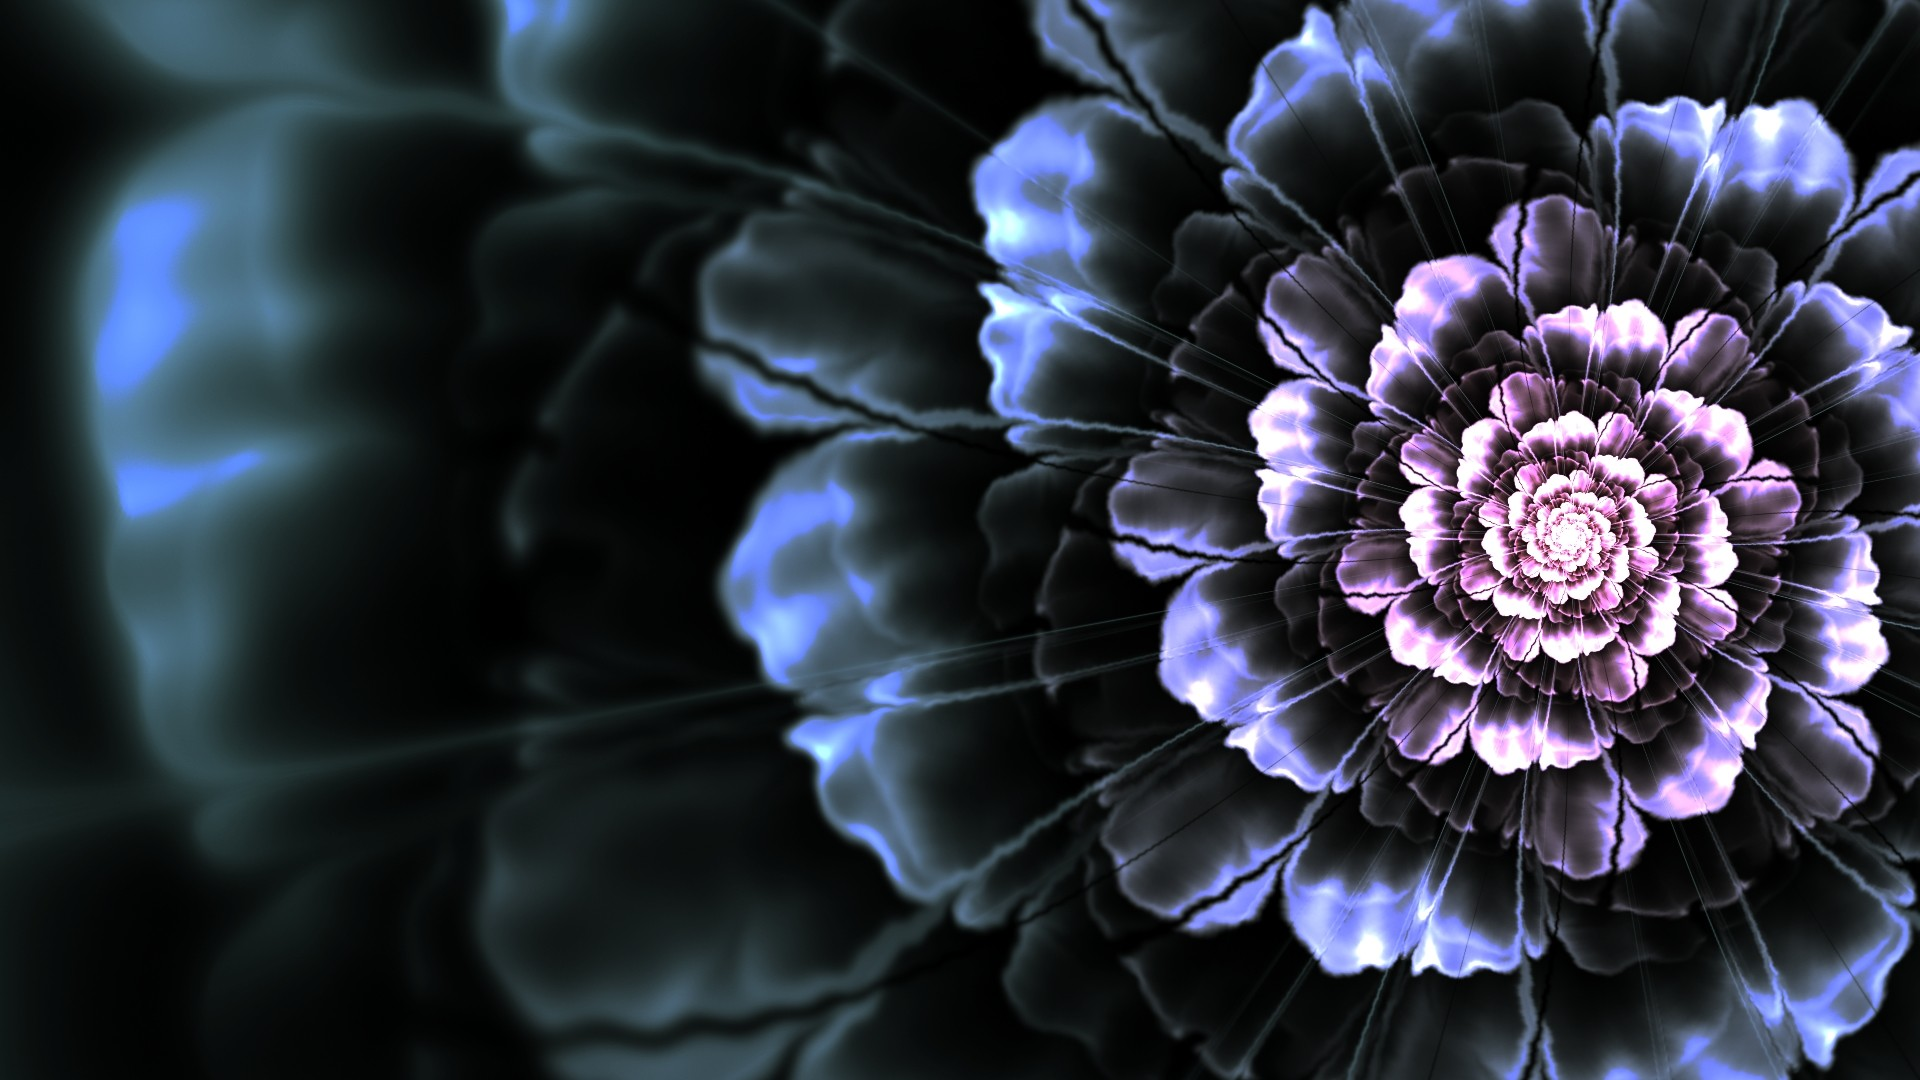 Dark Flower Wallpaper Wallpapertag